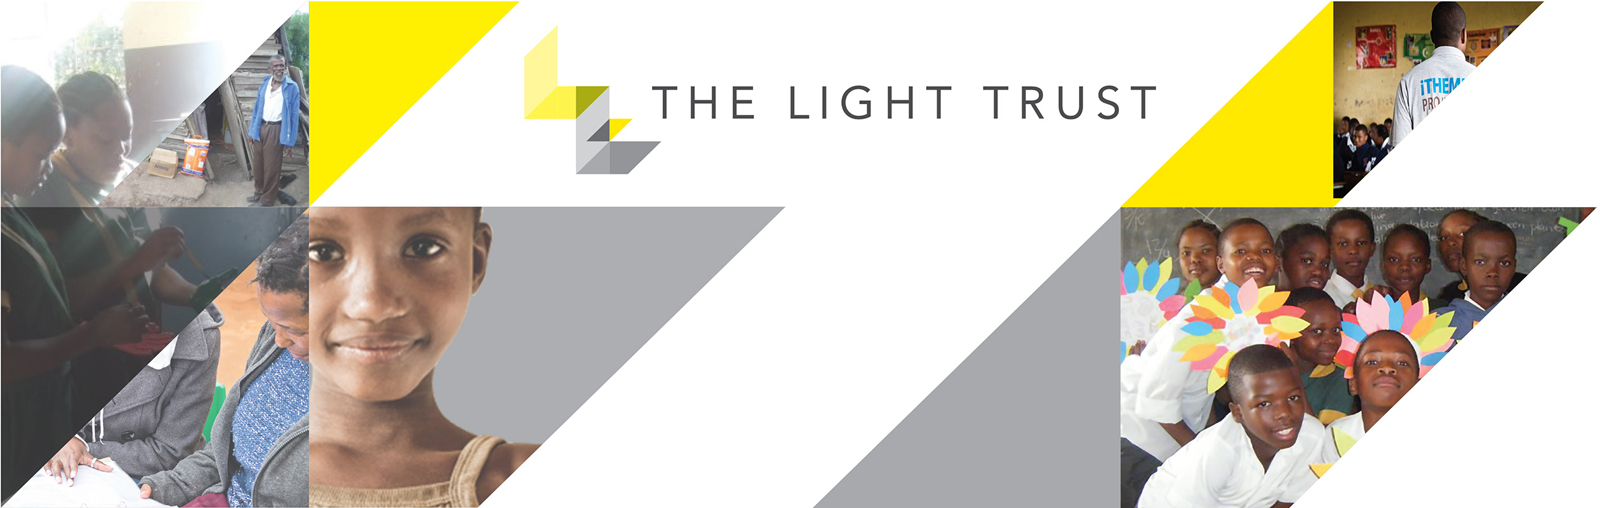 The Light Trust